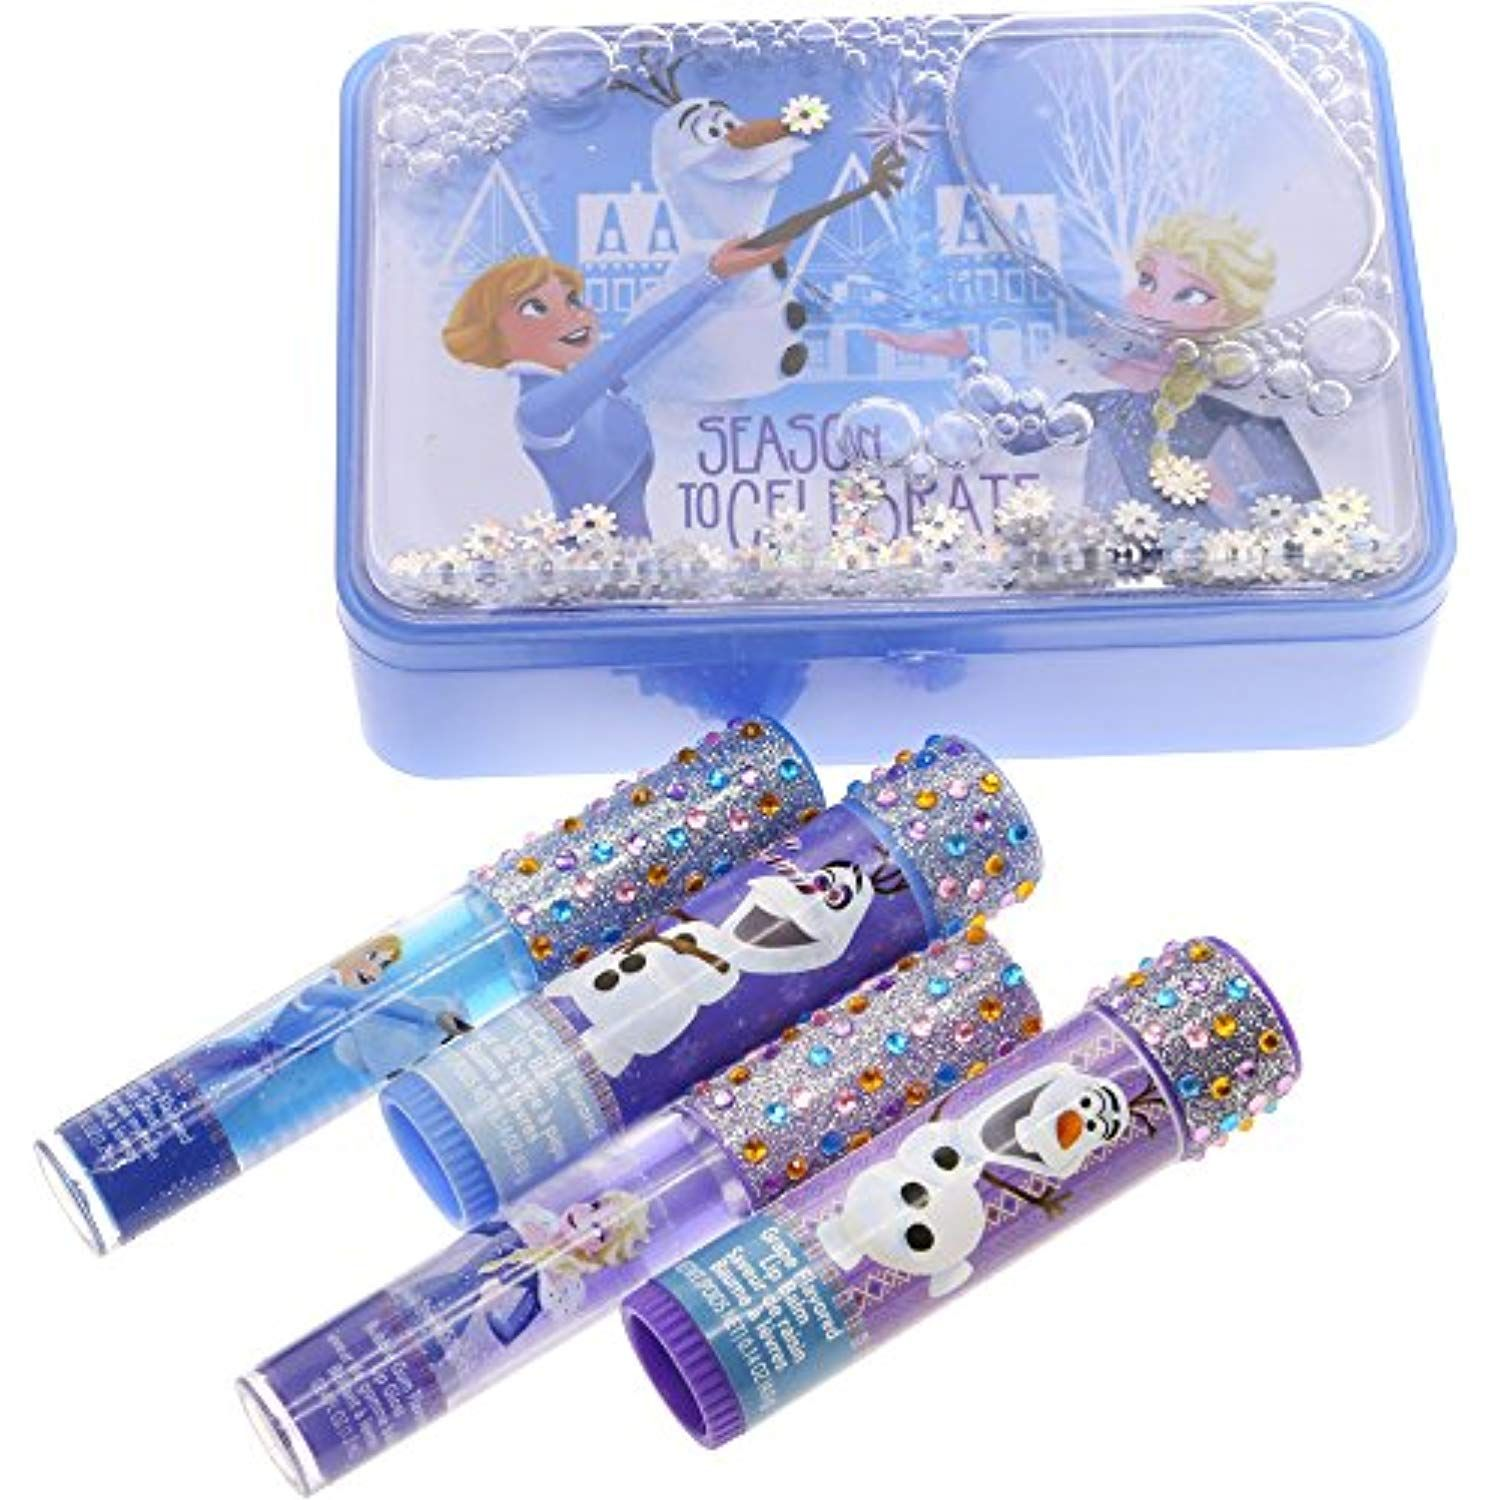 Townley Girl Frozen Sparkly Lip Set For Girls, 4 pack with